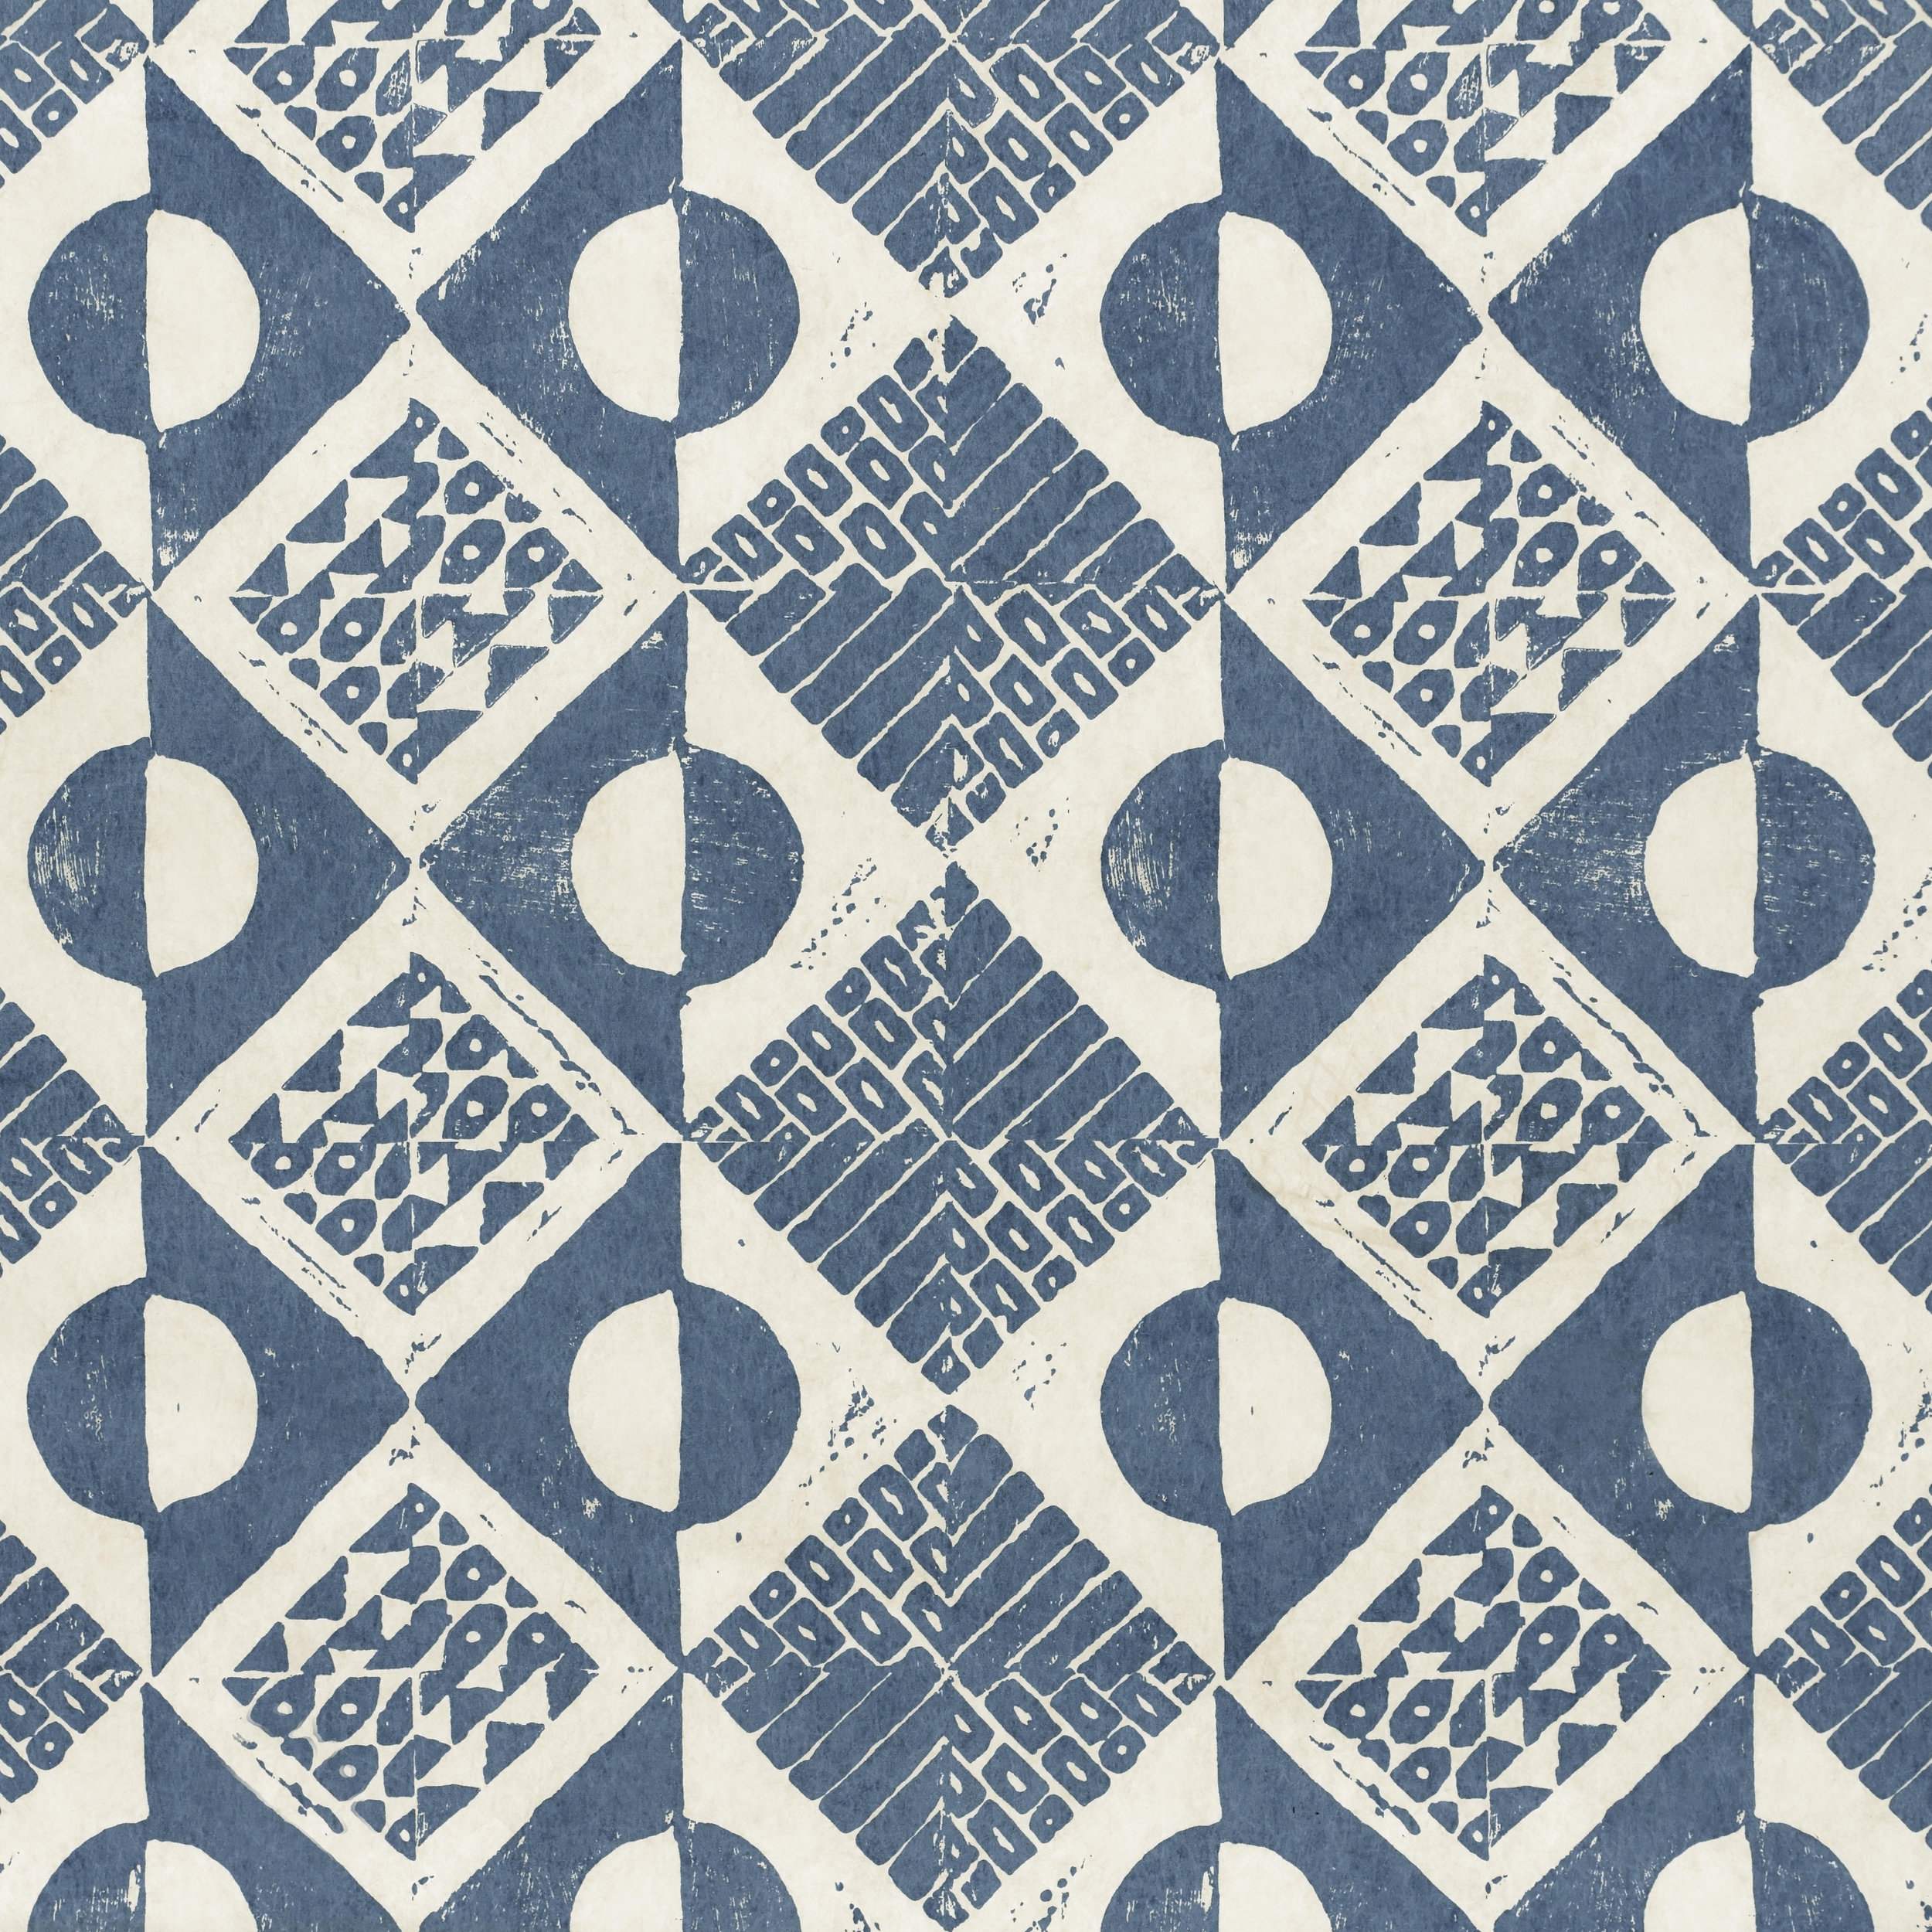 <p><strong>CIRCLES & SQUARES</strong>azure 681-02<a href=/the-spencer-collection/circles-squares-azure-681-02>More →</a></p>